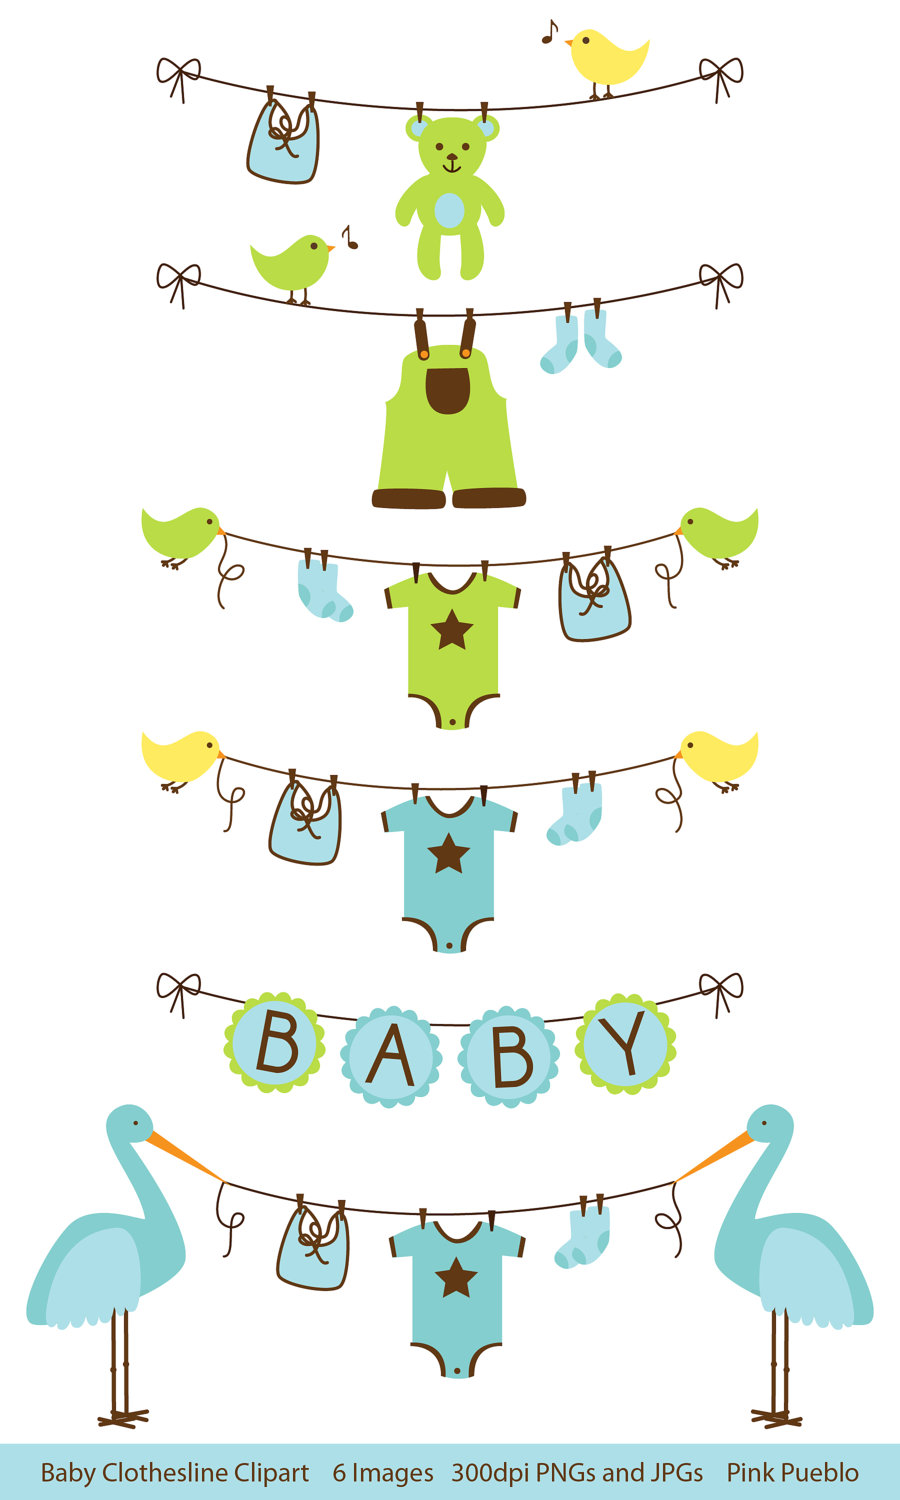 Clip Art Baby Shower Backgrounds For Inv-Clip Art Baby Shower Backgrounds For Invitations Boy Baby Shower-9